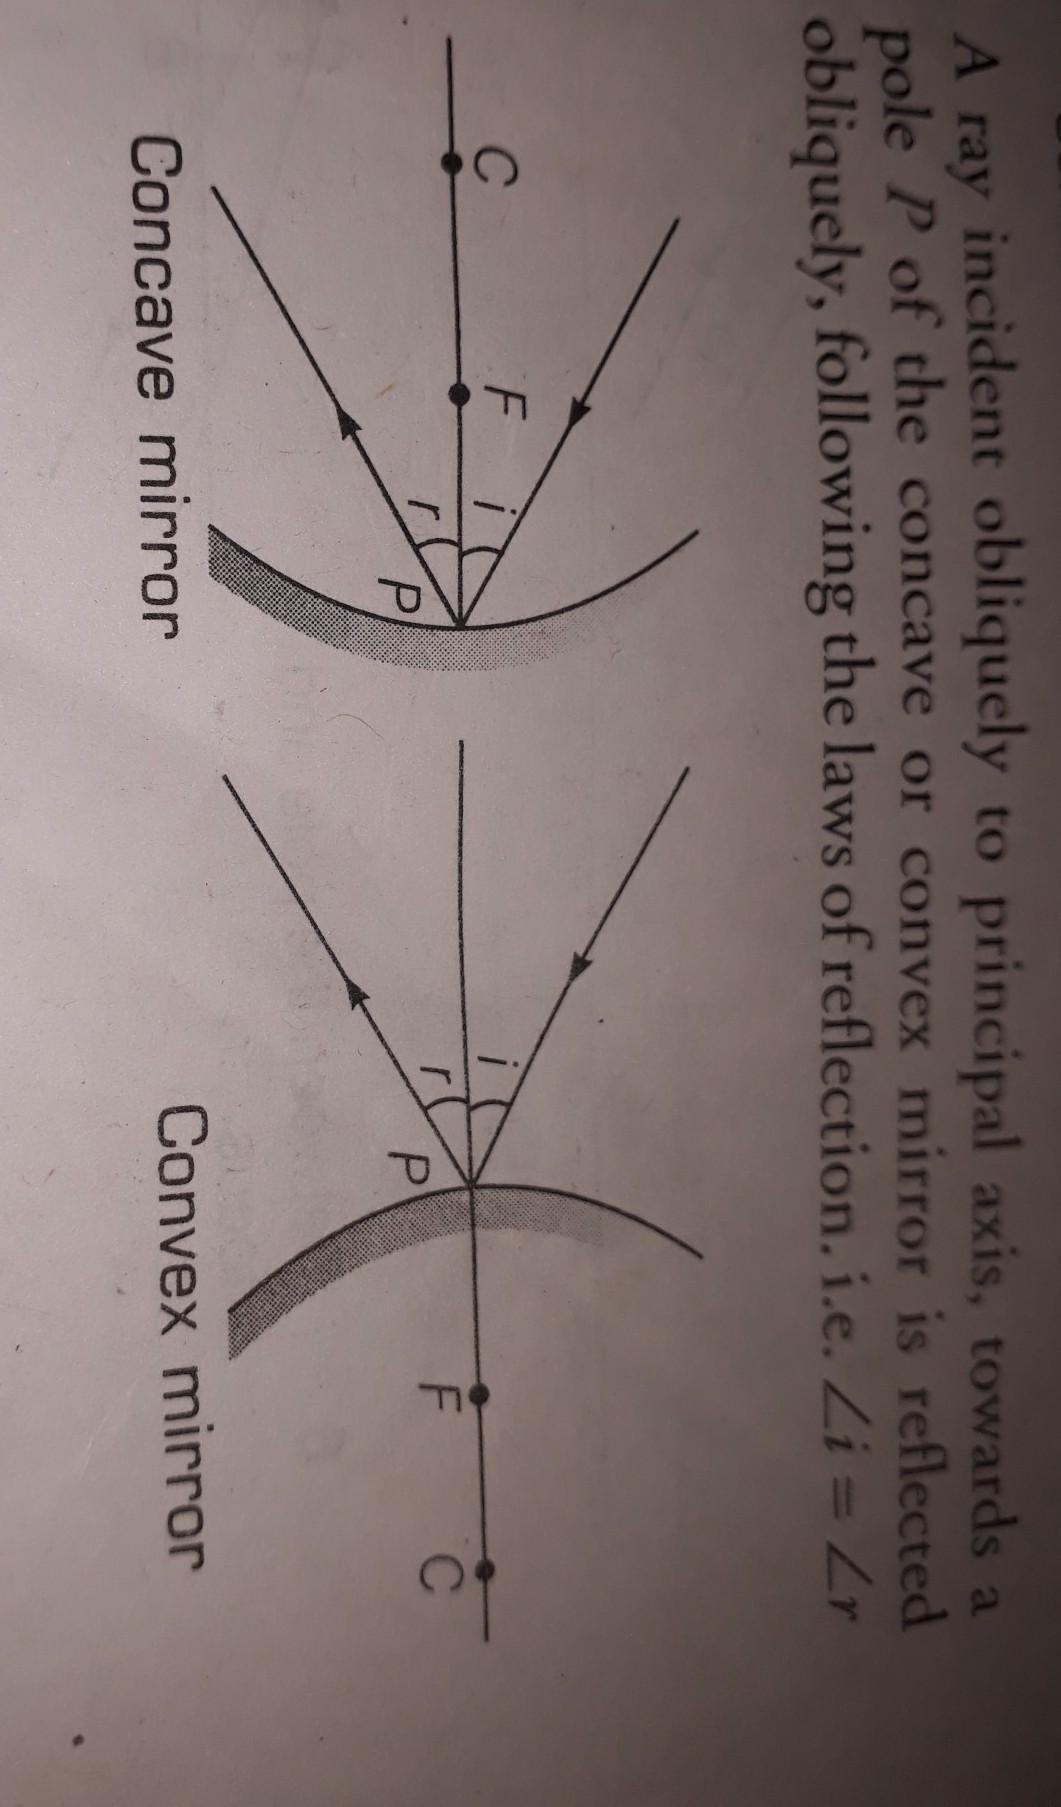 For A Concave Mirror Draw Ray Diagram To Show The